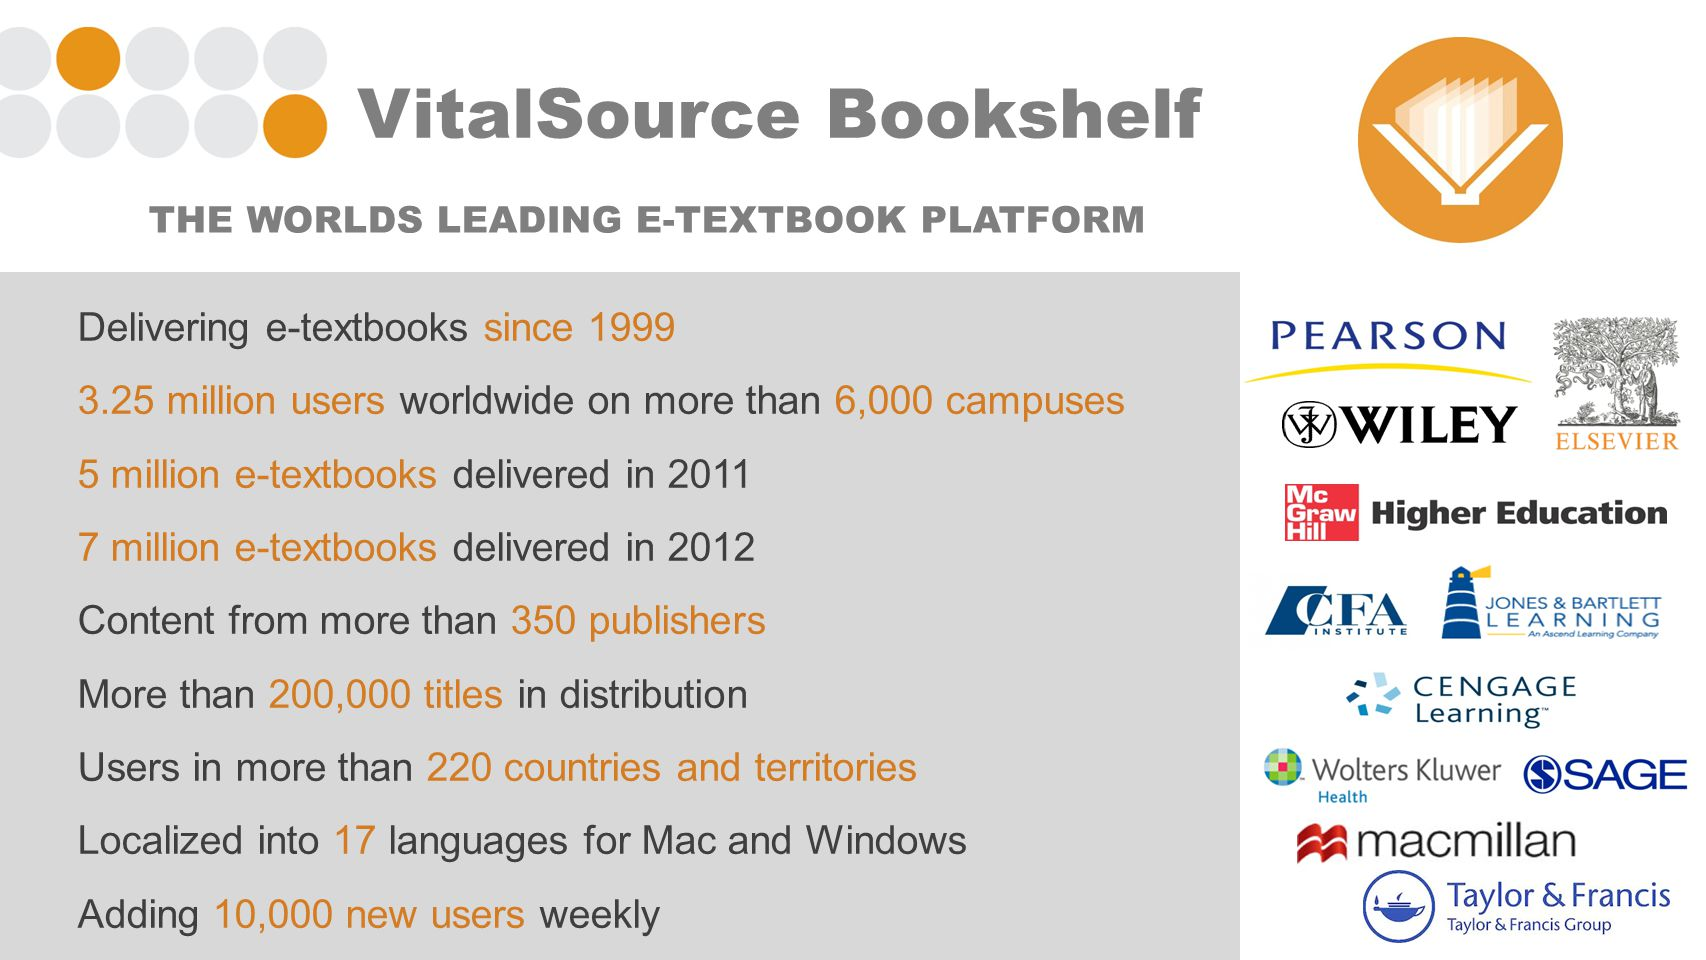 THE WORLDS LEADING E-TEXTBOOK PLATFORM VitalSource Bookshelf Delivering e-textbooks since 1999 3.25 million users worldwide on more than 6,000 campuses 5 million e-textbooks delivered in 2011 7 million e-textbooks delivered in 2012 Content from more than 350 publishers More than 200,000 titles in distribution Users in more than 220 countries and territories Localized into 17 languages for Mac and Windows Adding 10,000 new users weekly